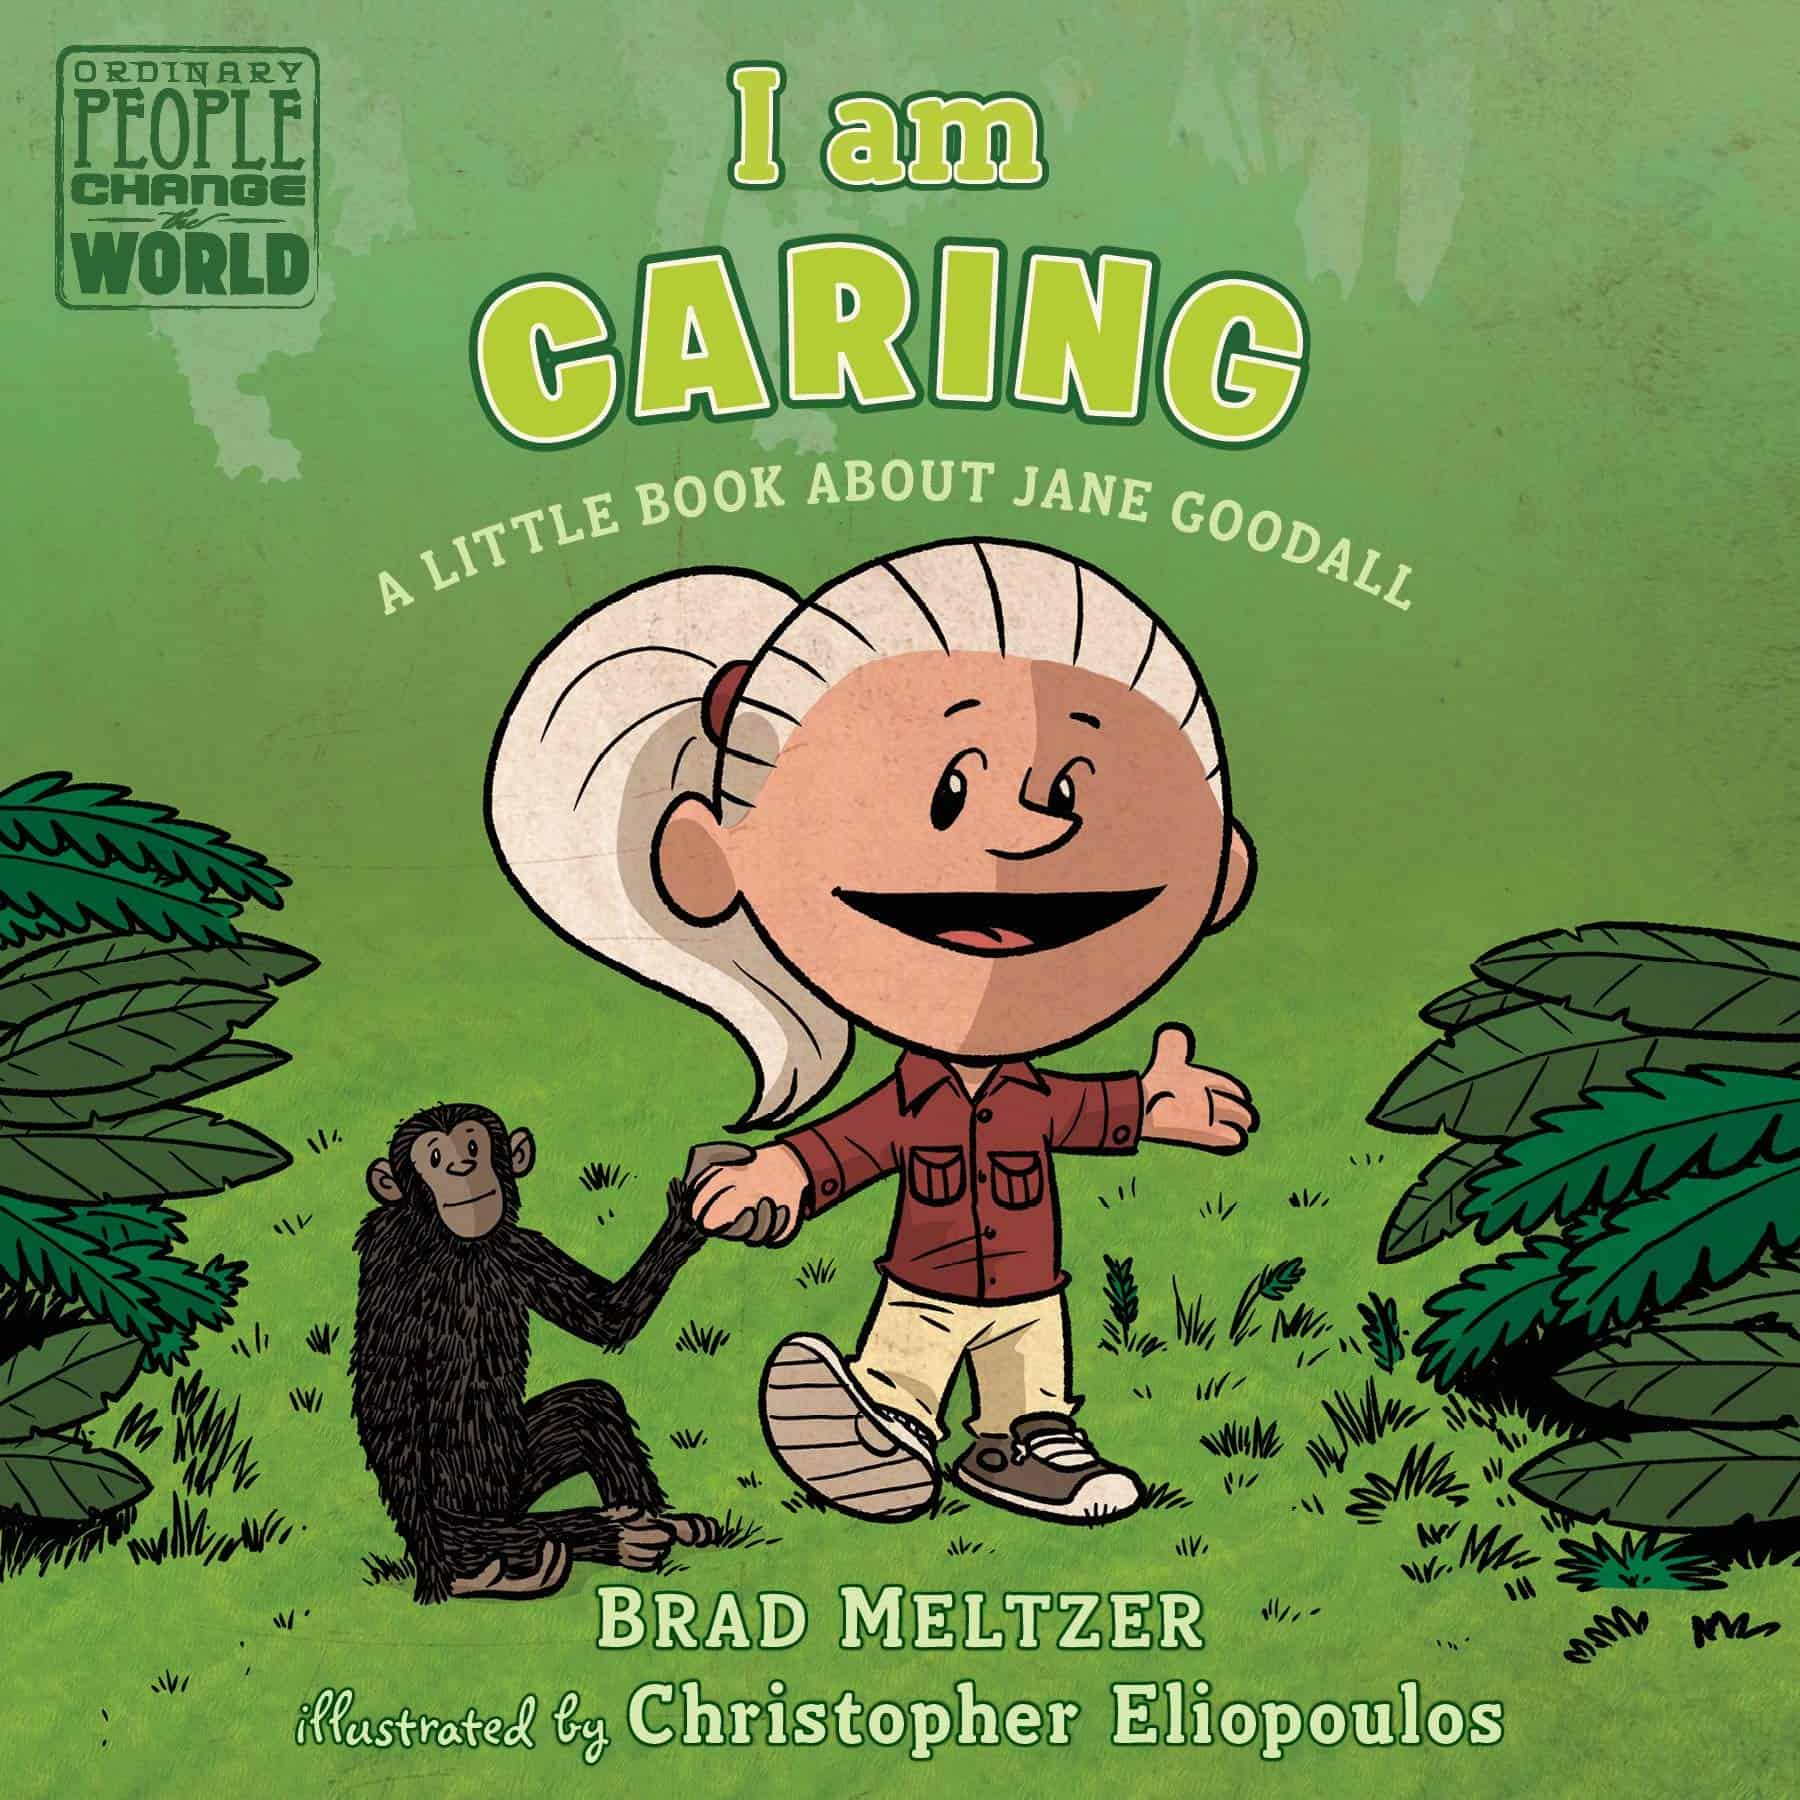 books about jane goodall